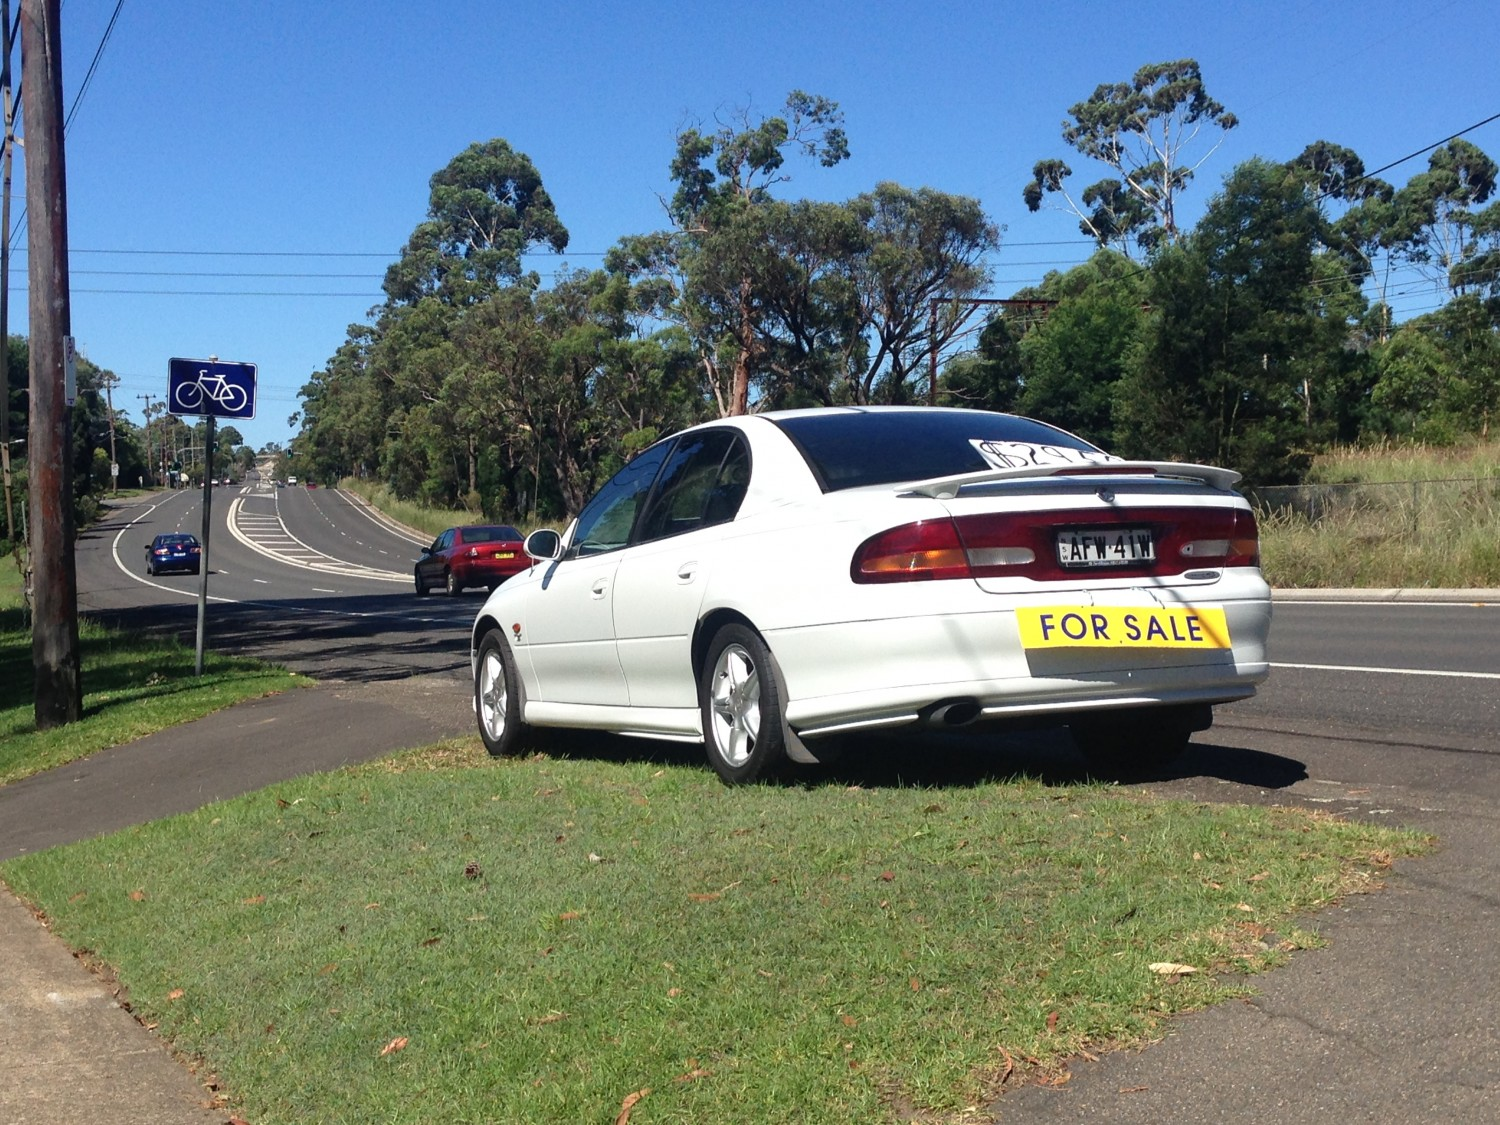 1998 Holden VT Commodore - Supercharged V6